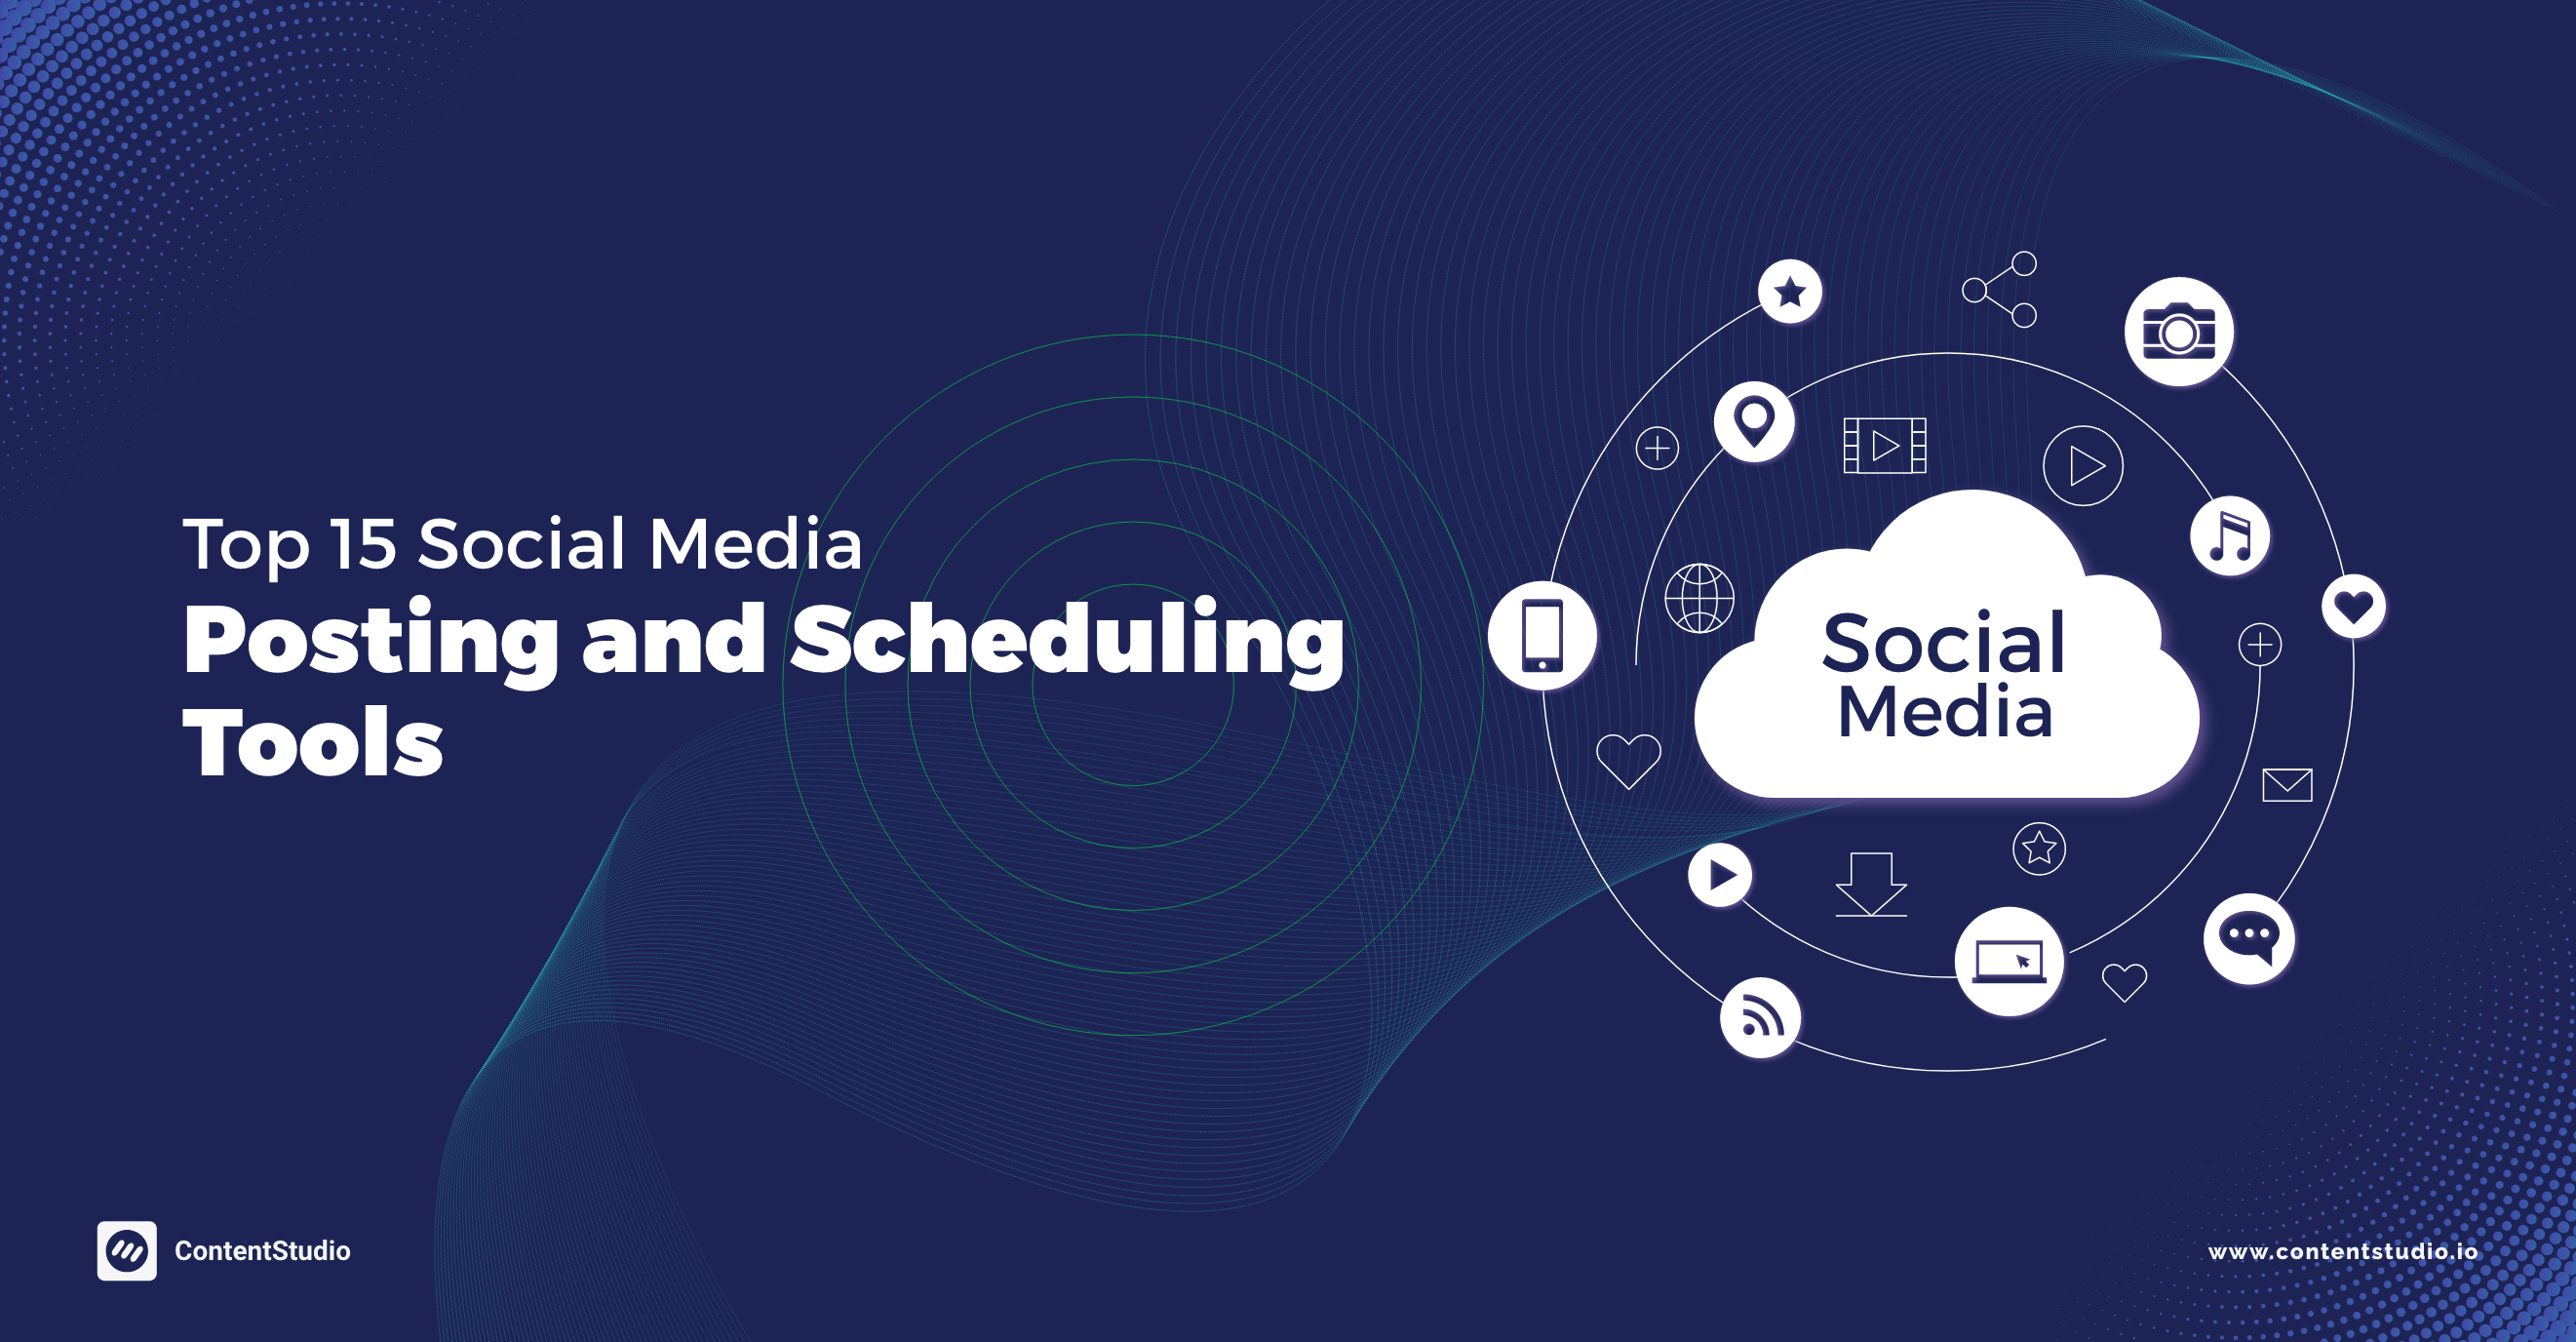 Social Media Posting and Scheduling Tools - ContentStudio